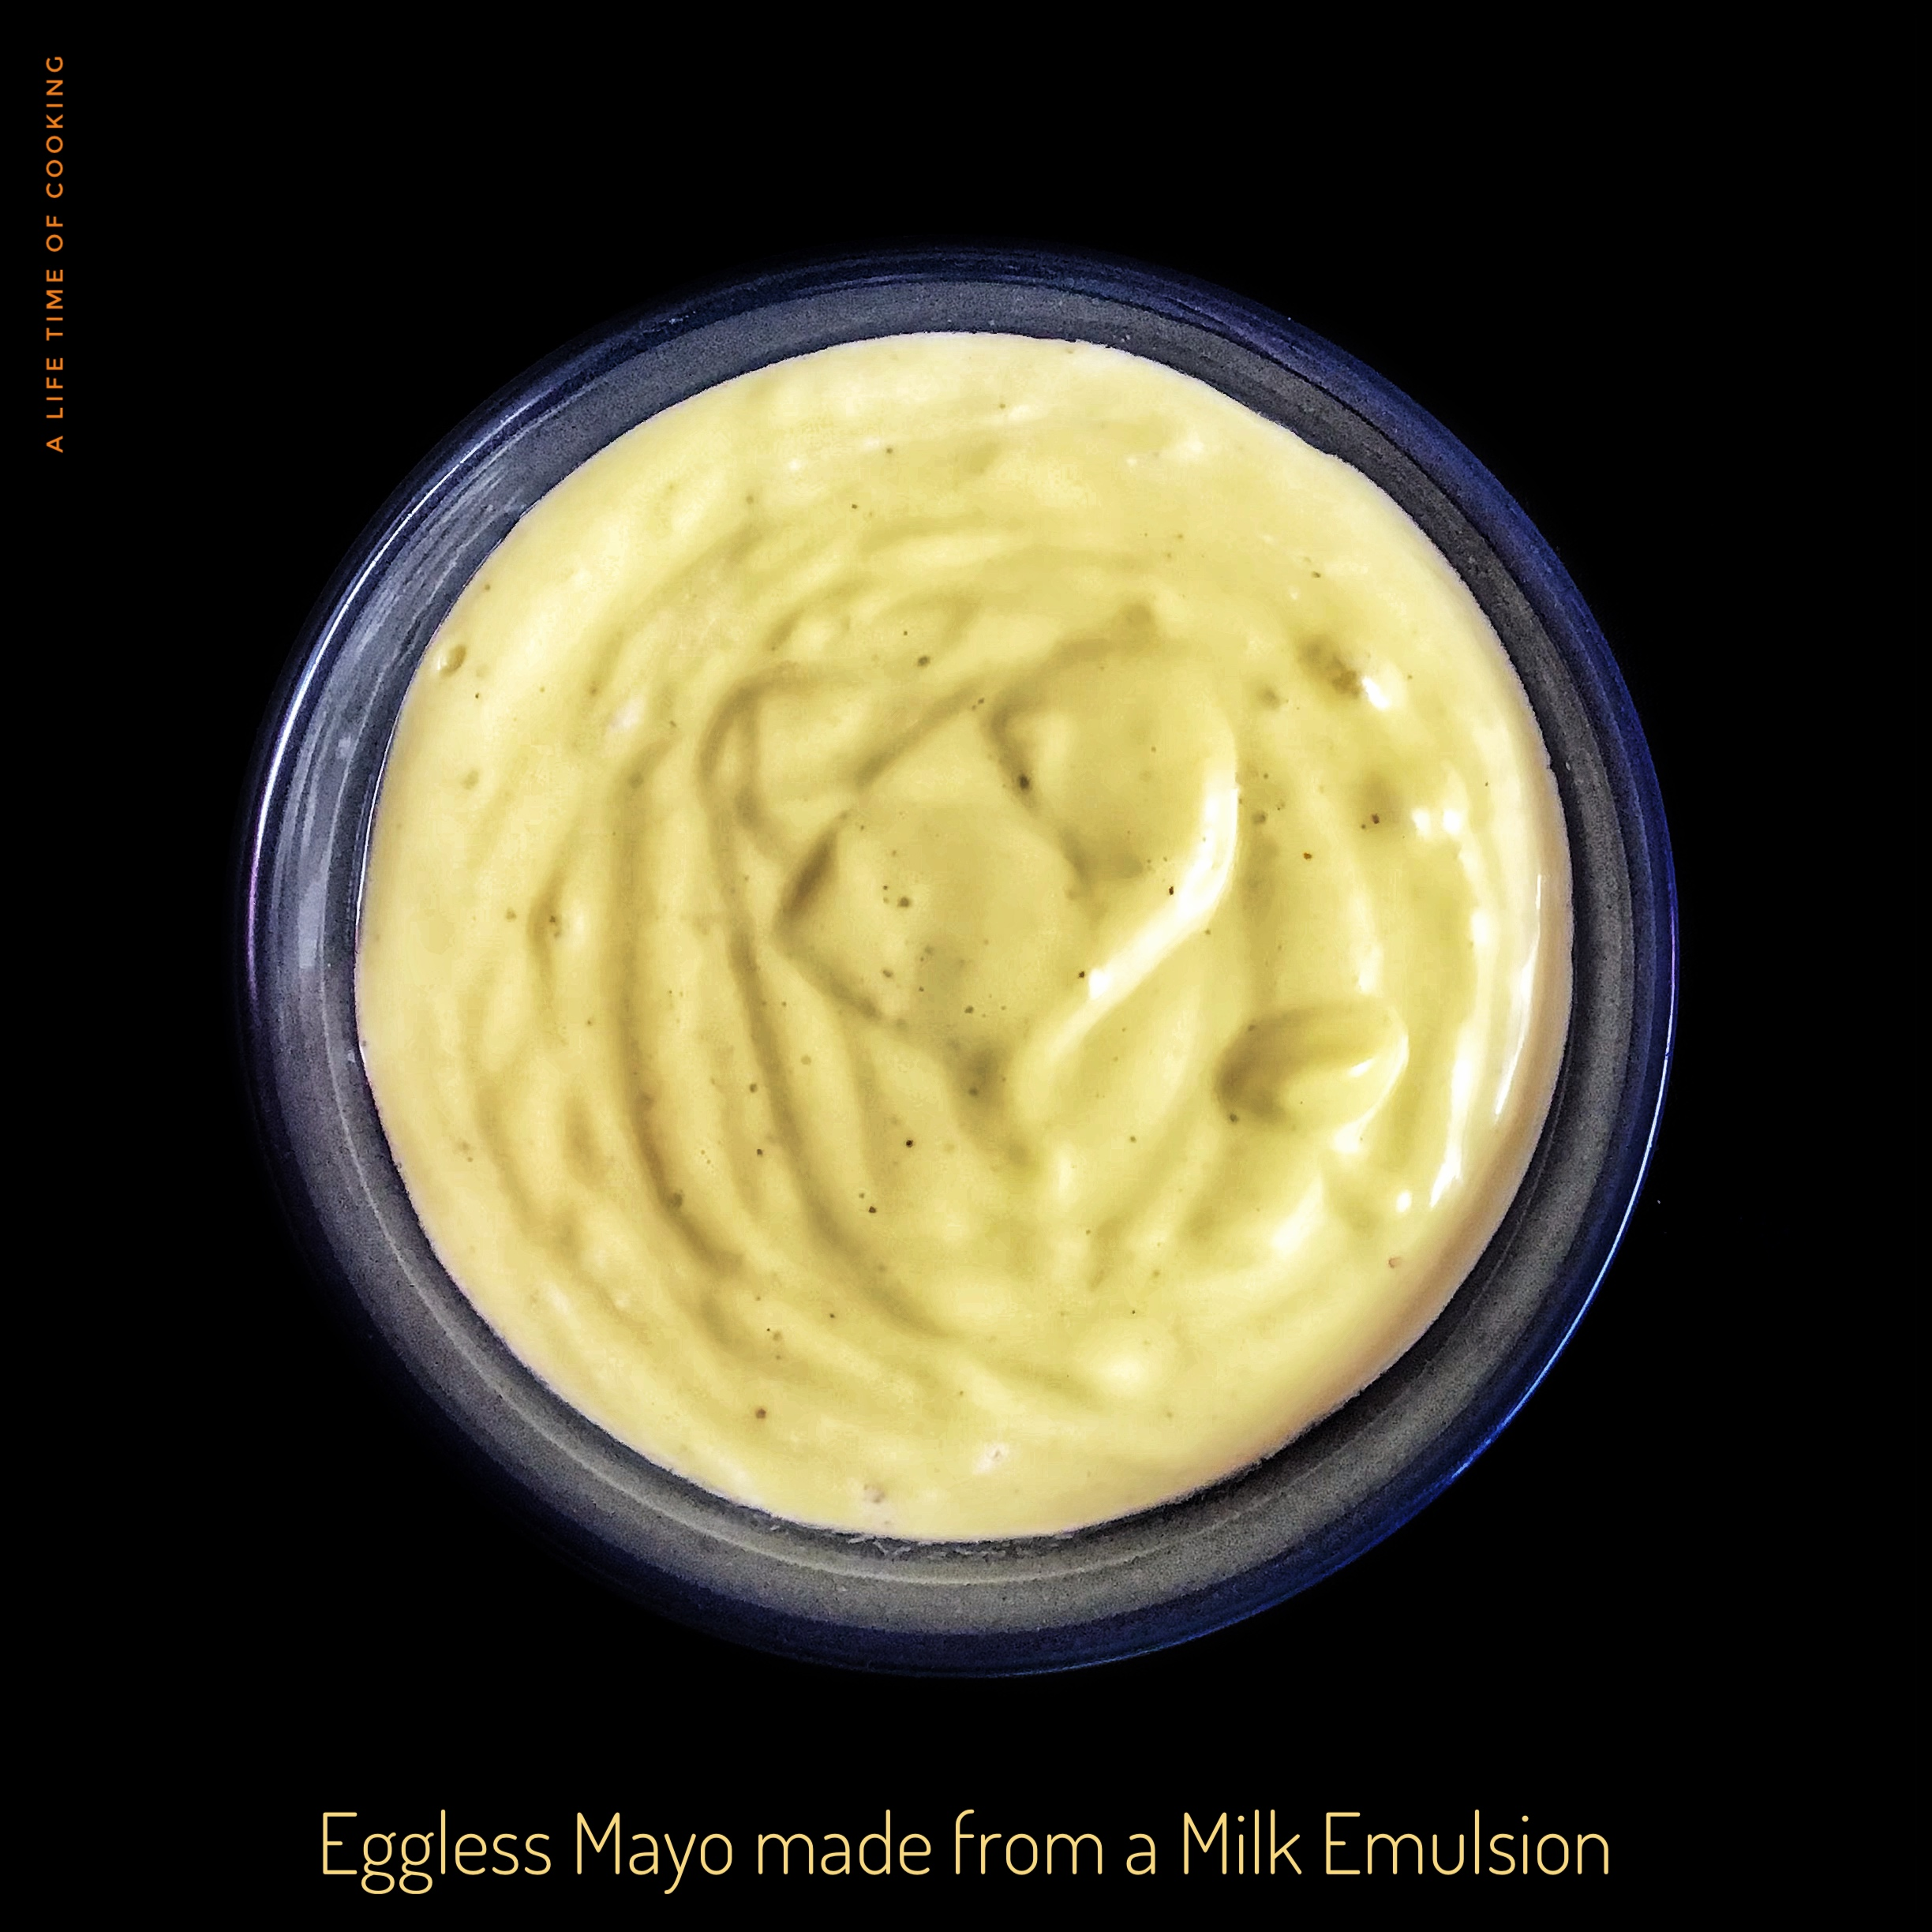 How to Make Eggless Mayo from Milk